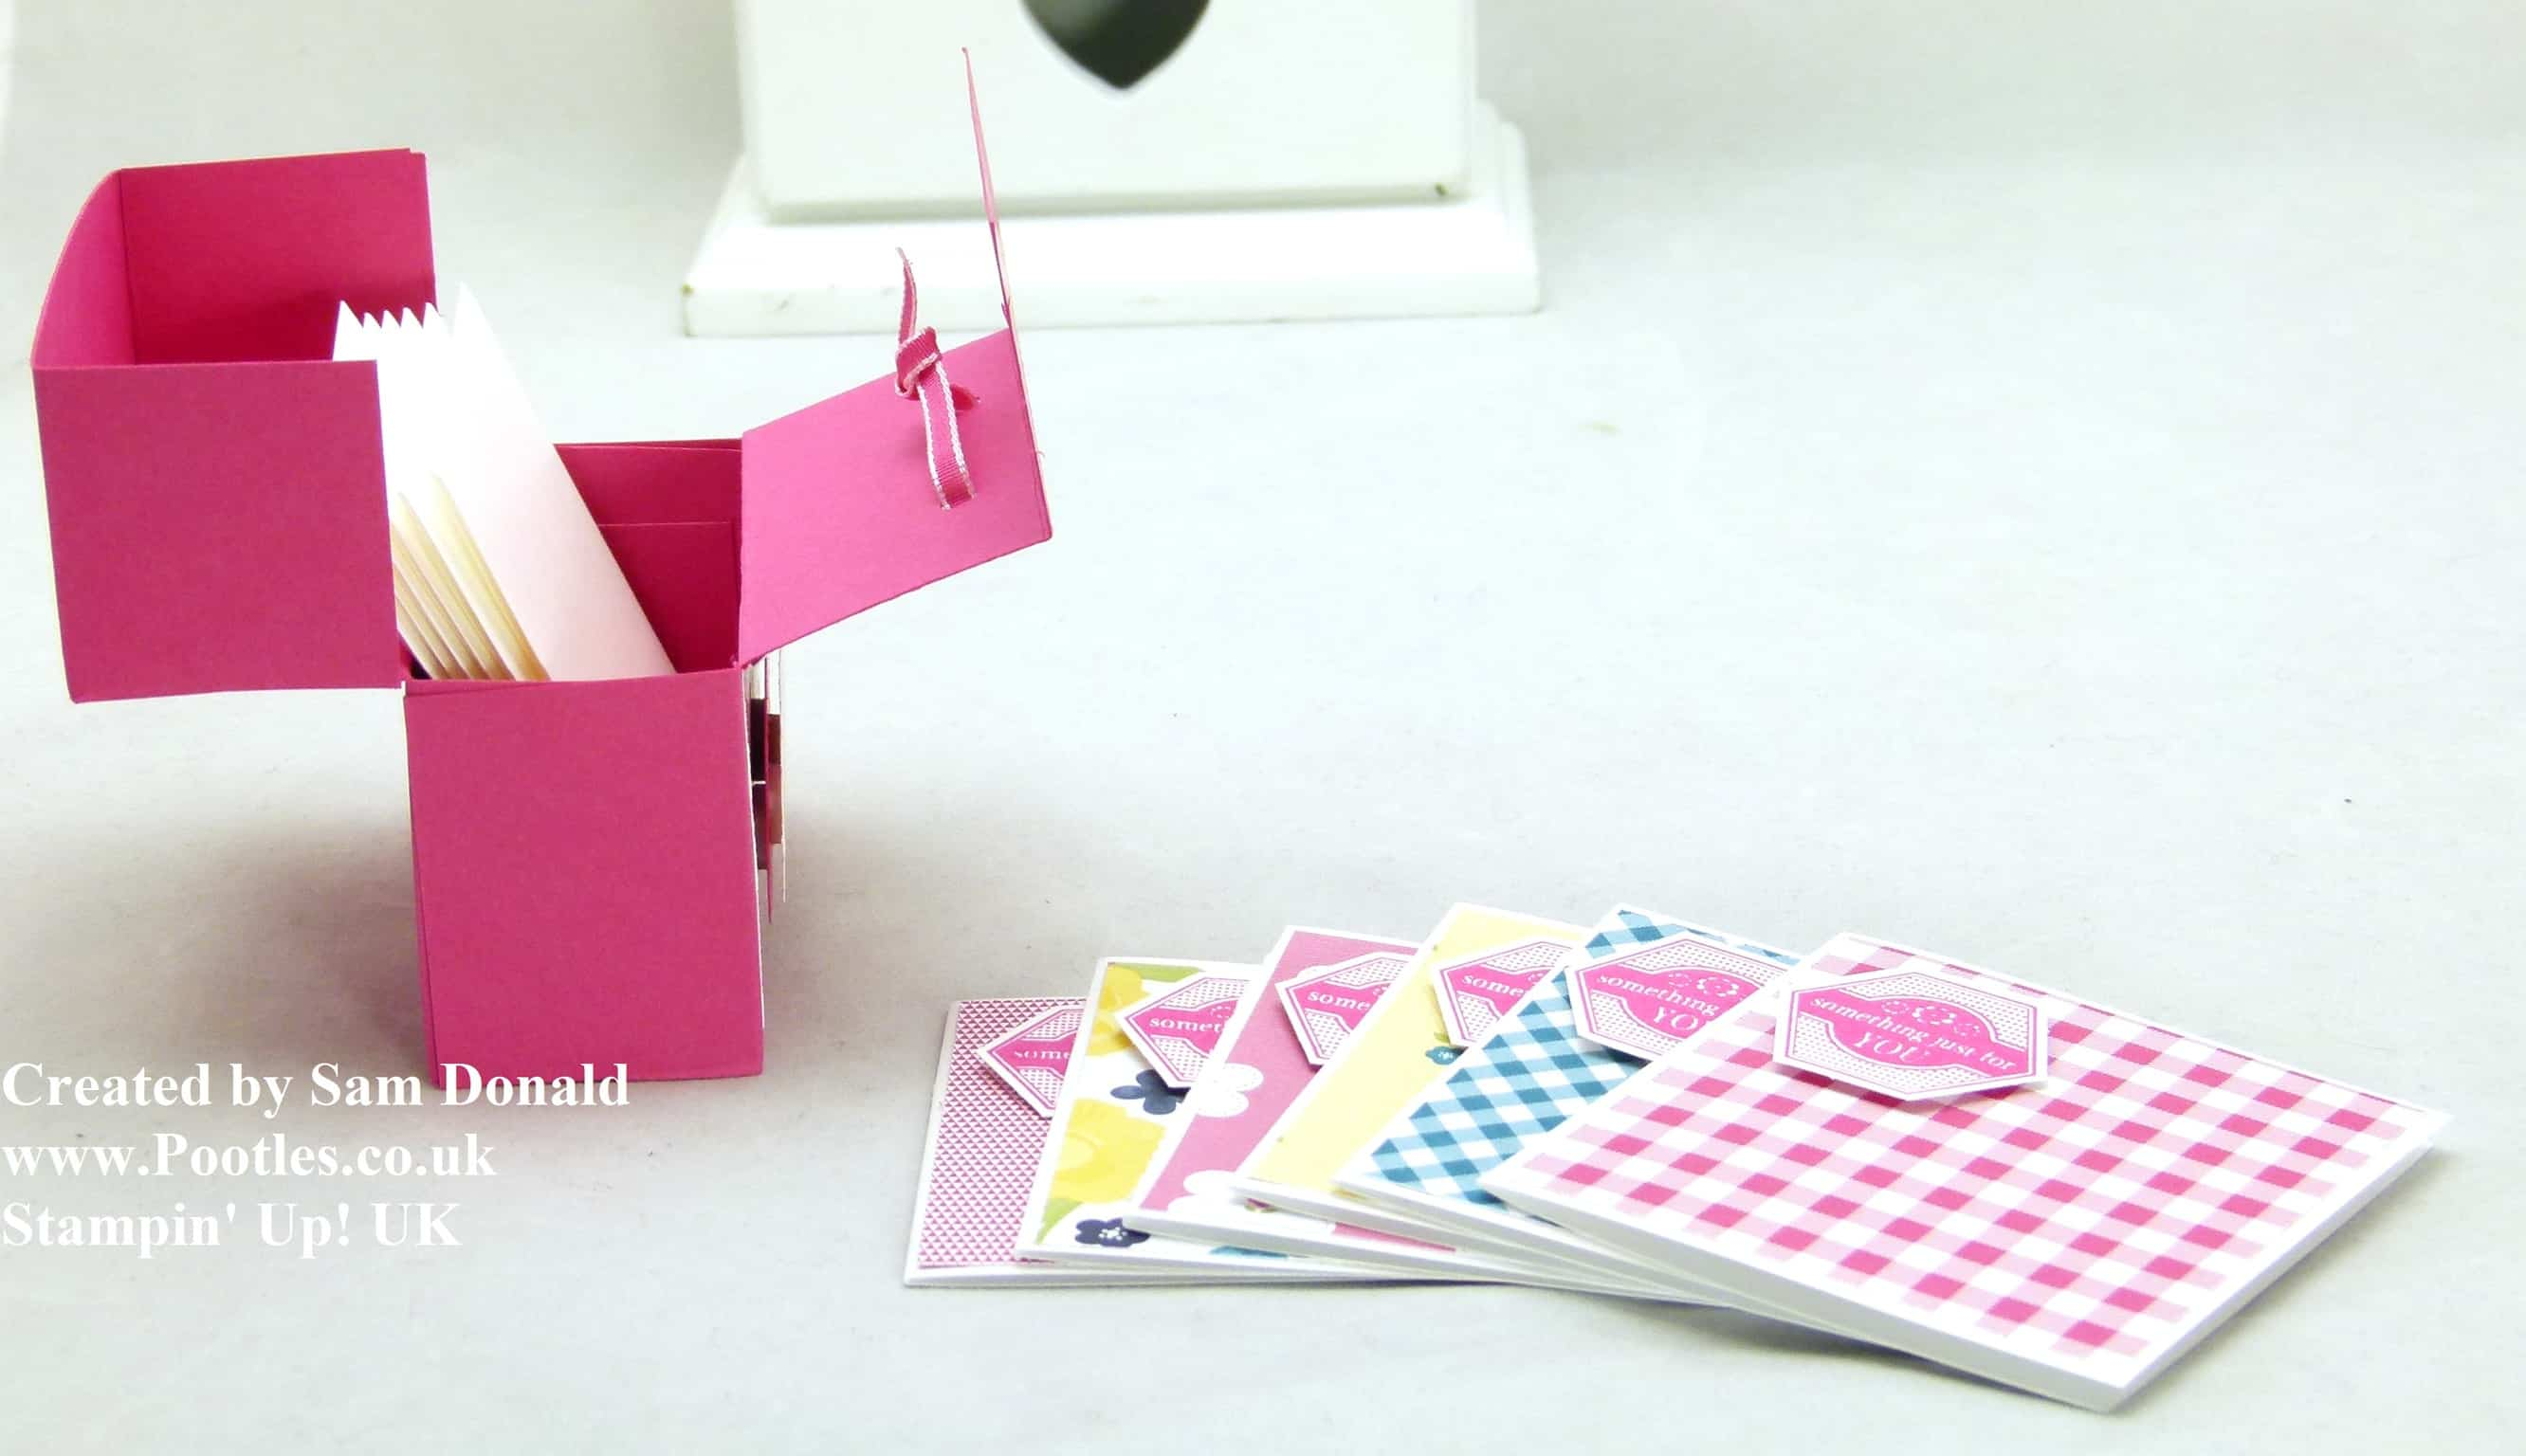 Pootles Stampin Up UK Soap and Card Box Tutorial 4